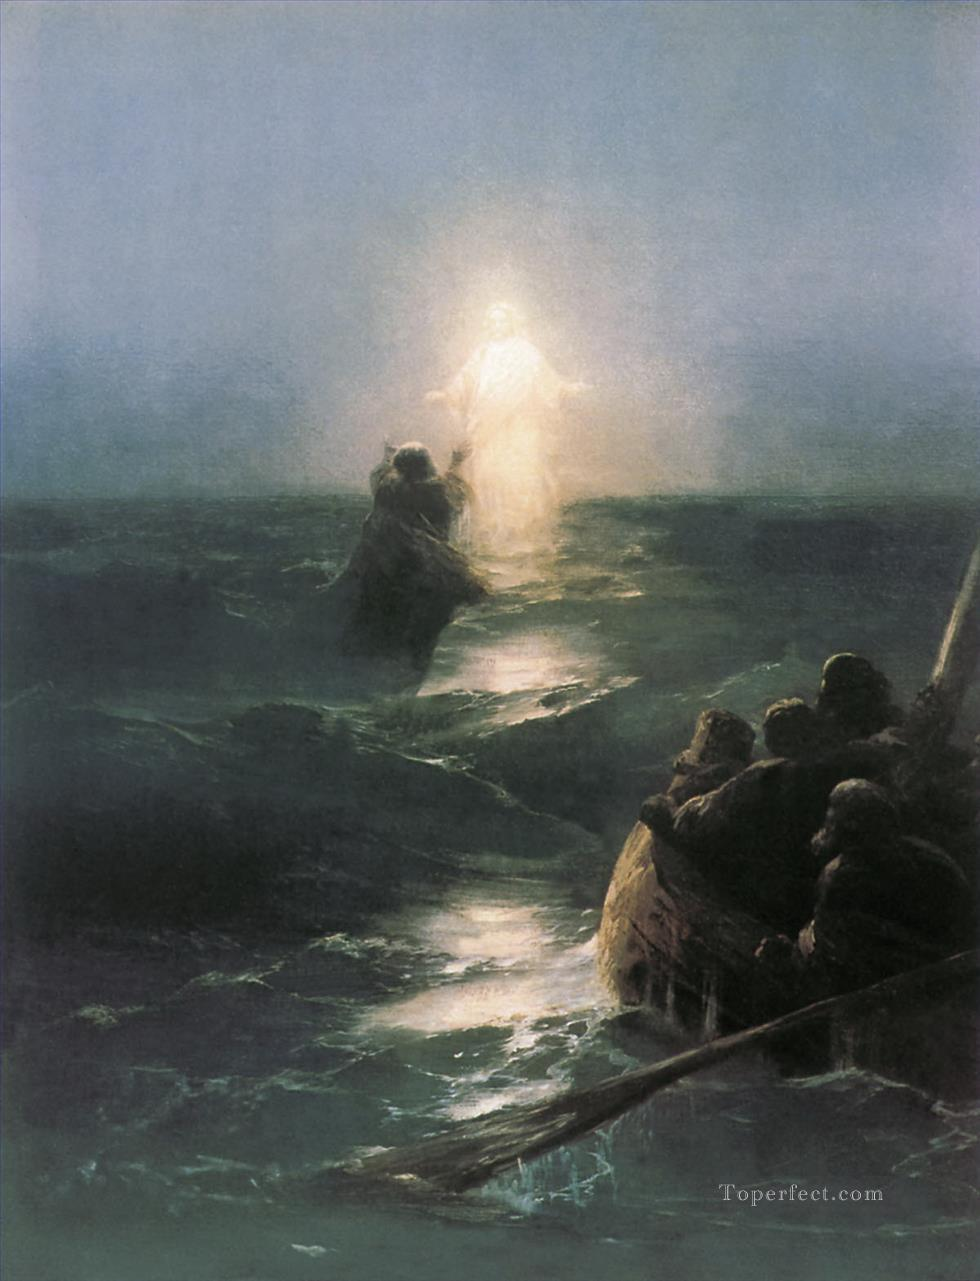 jesus walks on water Ivan Aivazovsky religious Christian Oil Paintings